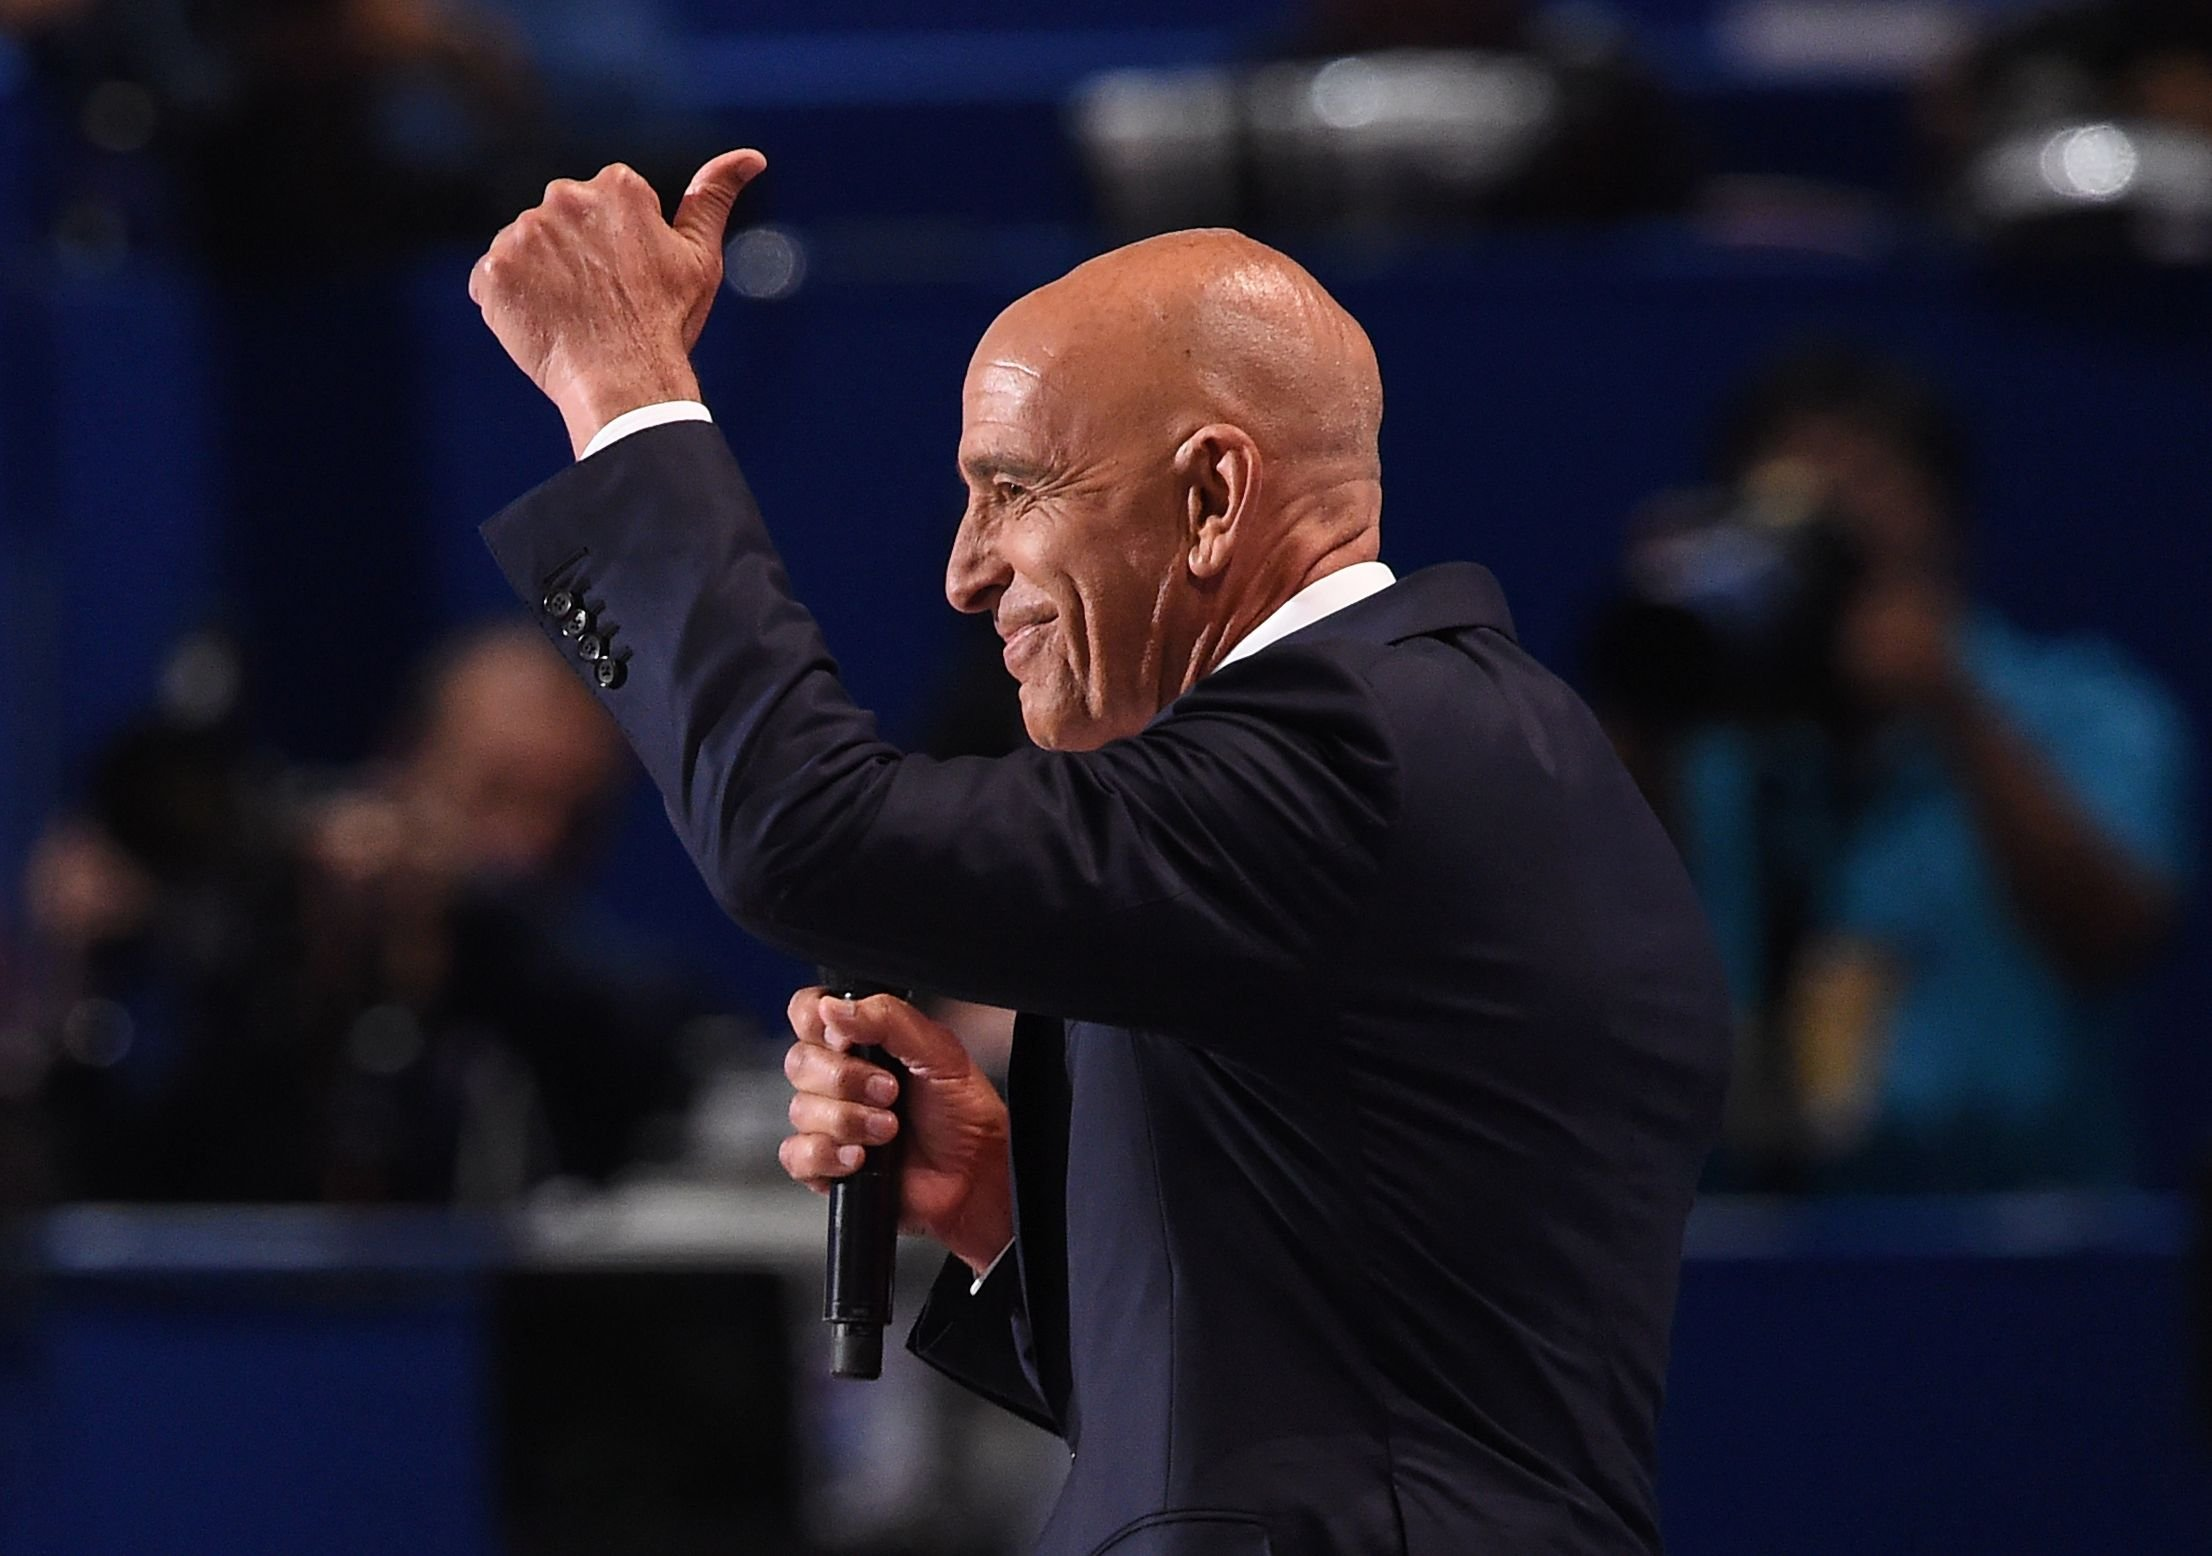 Tom Barrack, CEO of Colony Capital, addresses the final night of the Republican National Convention at Quicken Loans Arena in Cleveland on July 21, 2016.